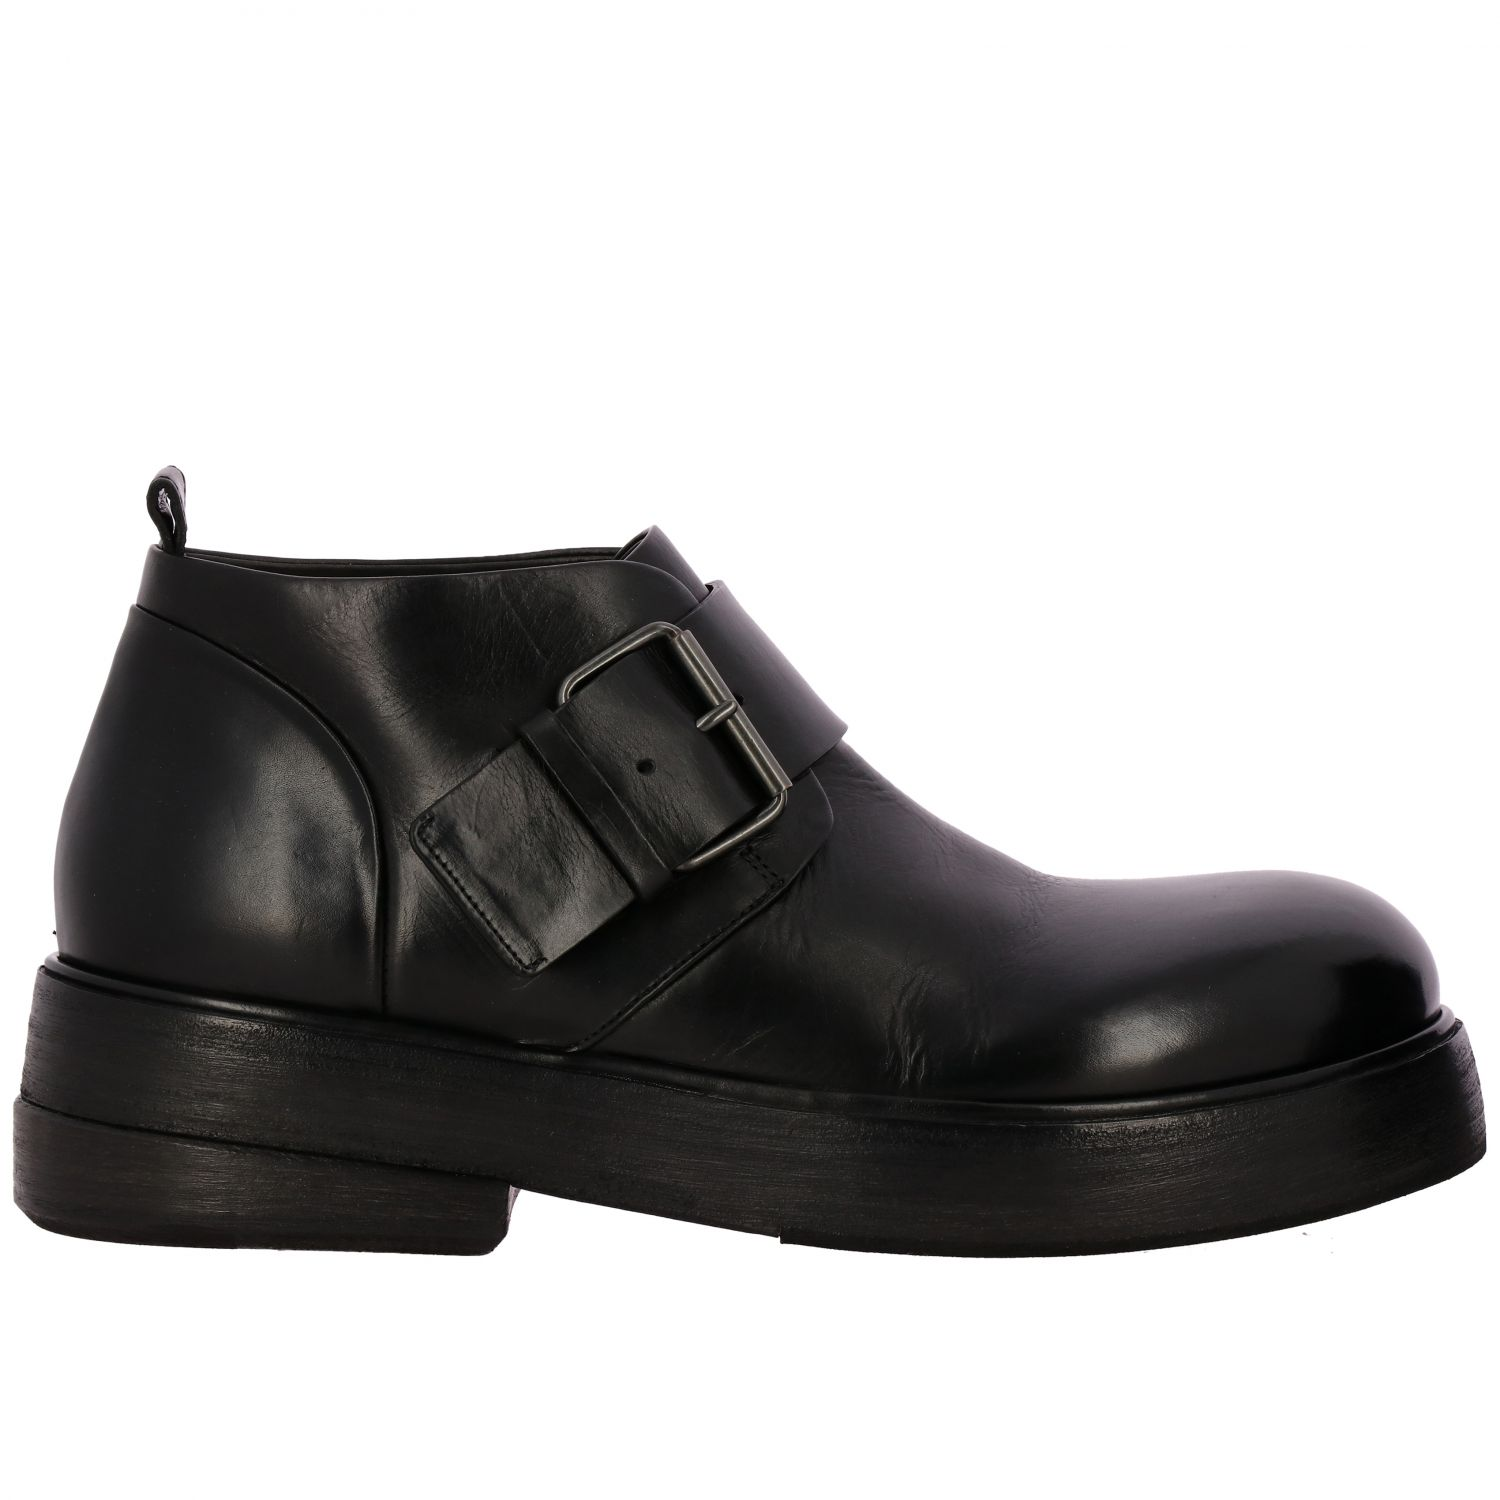 Zuccolona Marsell shoes in hand-colored natural leather black 1